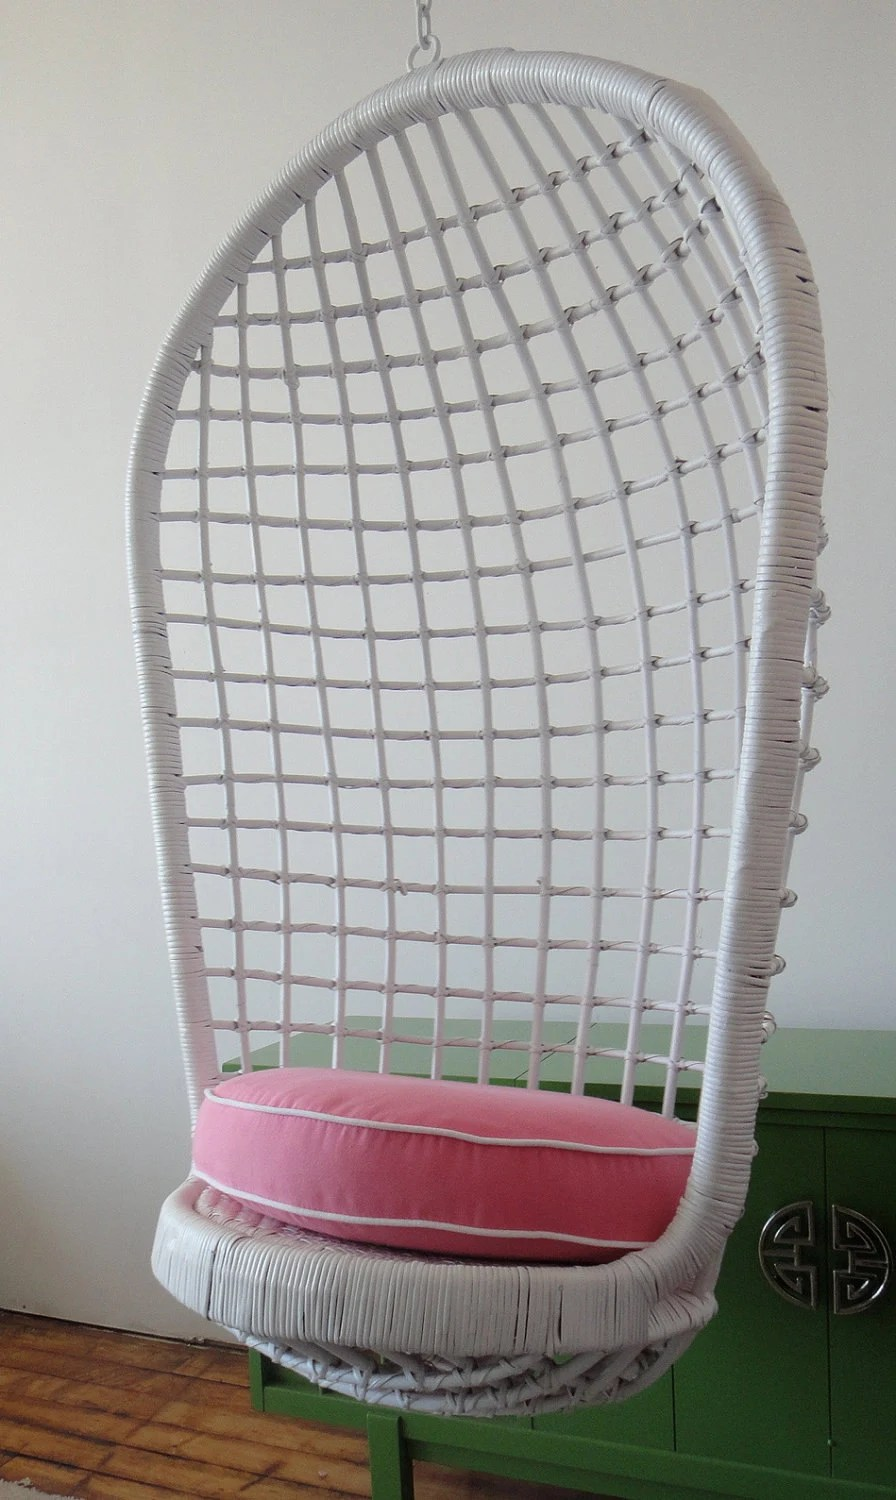 egg chair cushion acrylic legs hanging basket rattan wicker pink and white